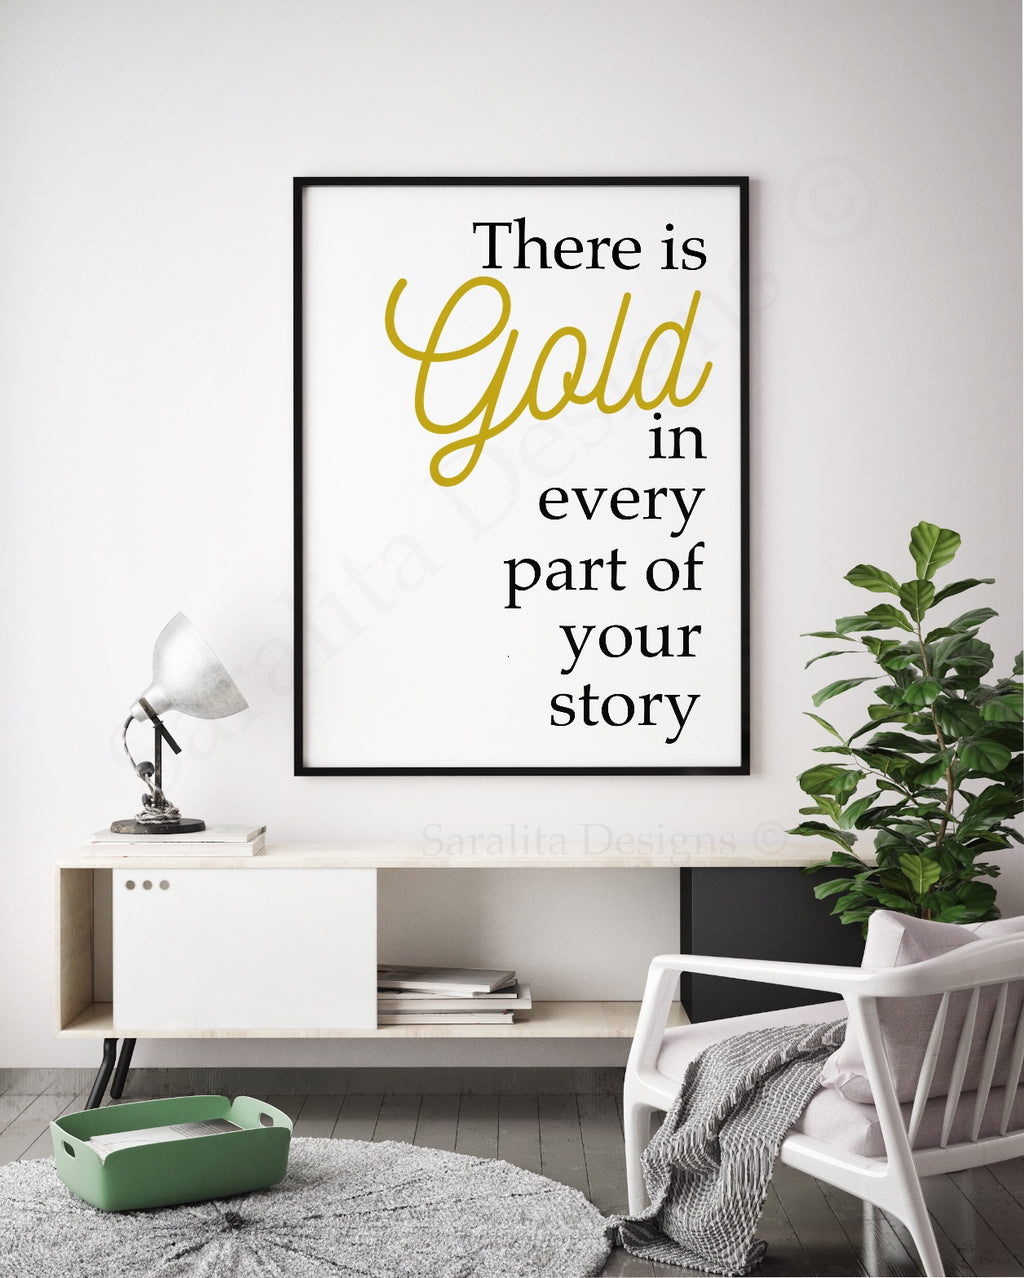 There is Gold in Every Part of Your Story